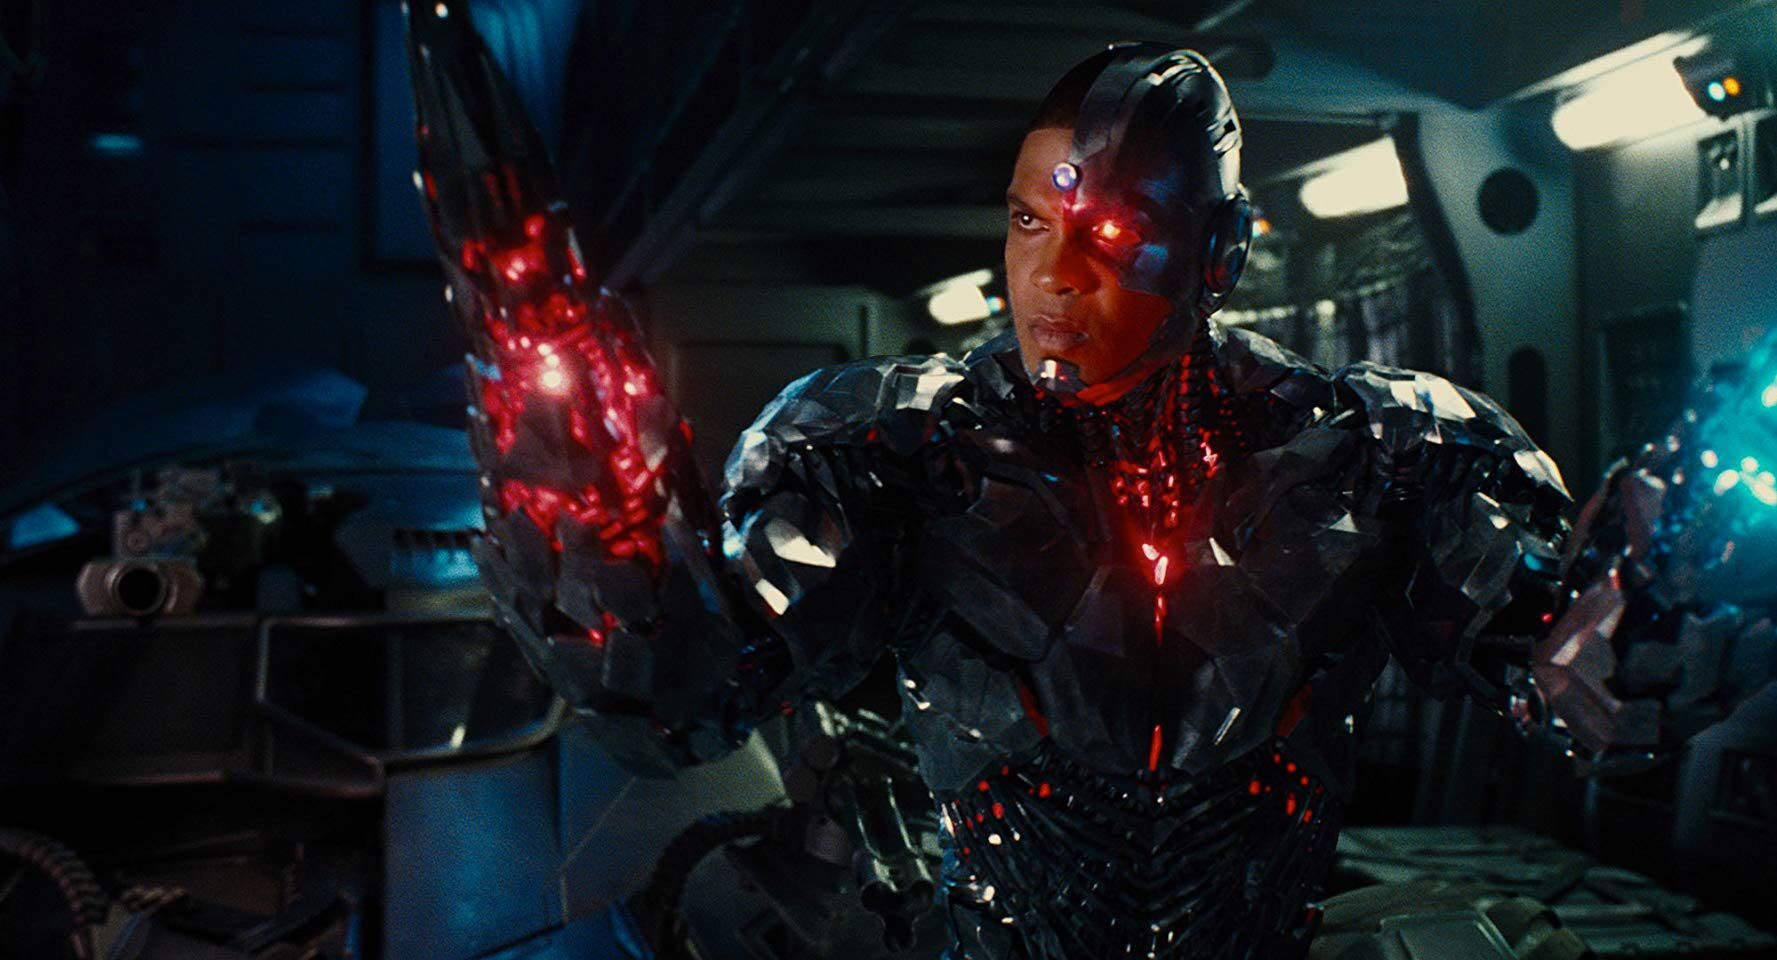 Justice League's Ray Fisher says playing Cyborg gave him a mantra to live his life by